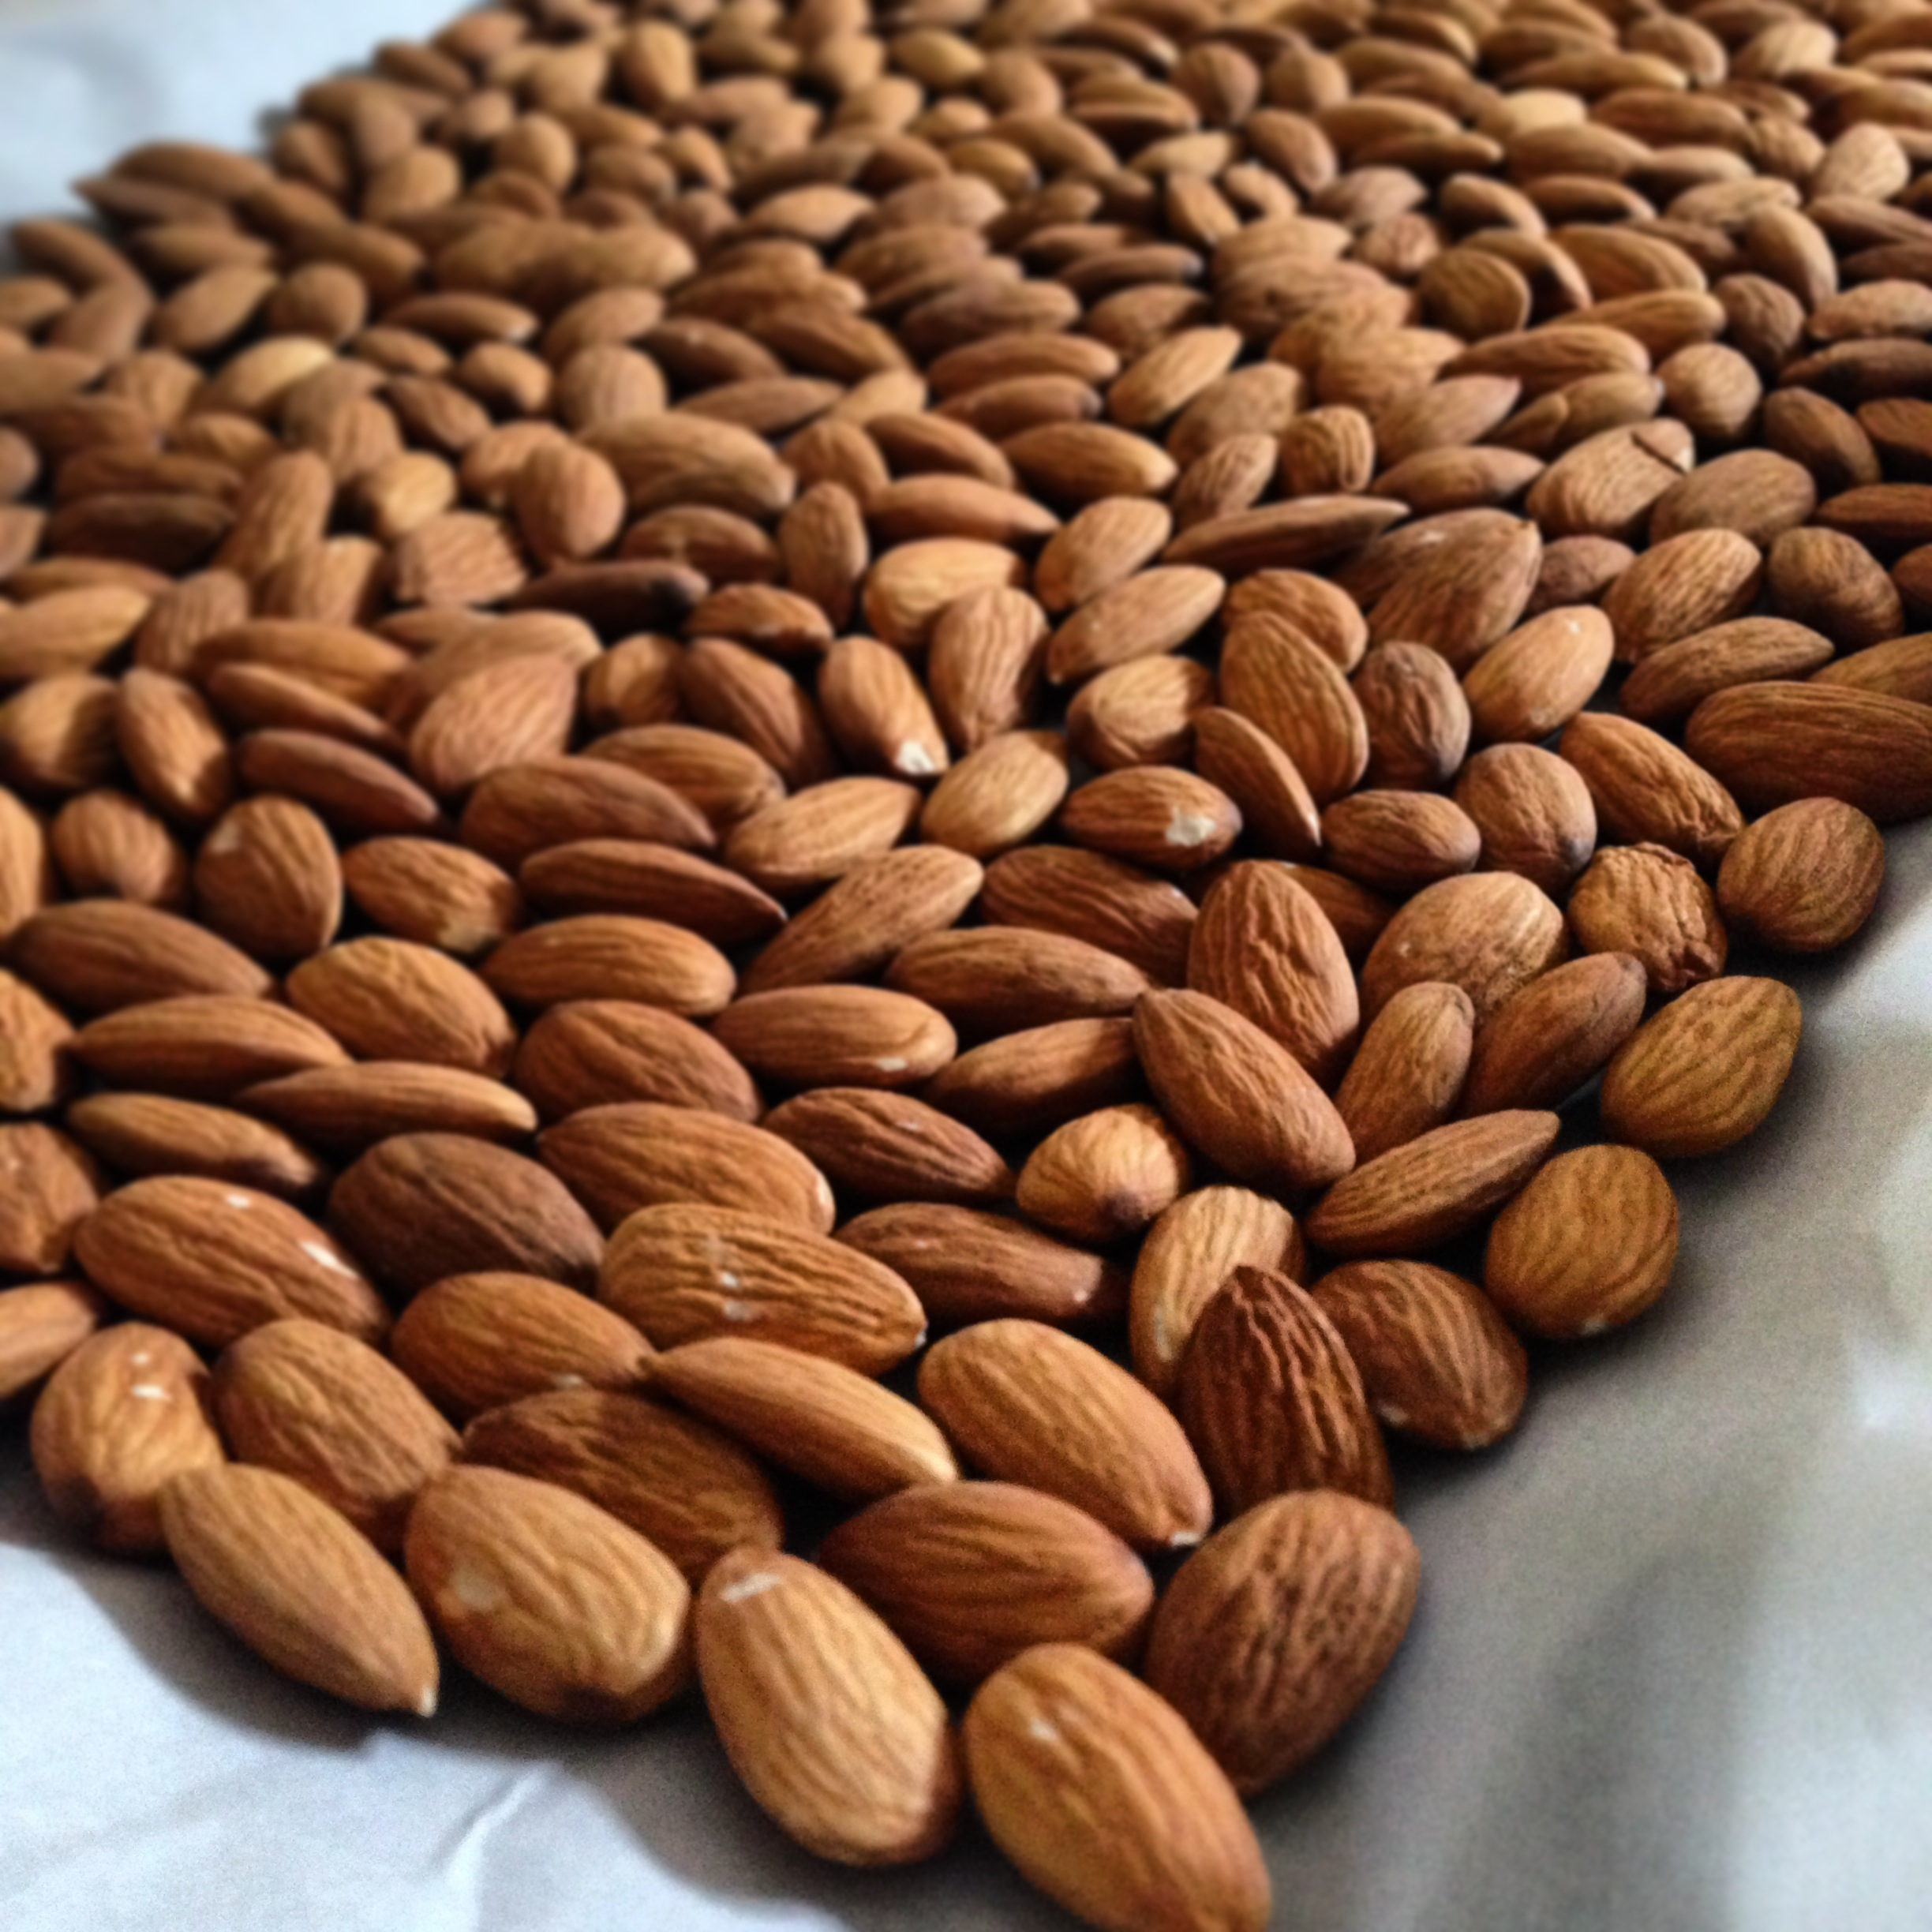 Roasted Almond|TheFitFoodieMama.com